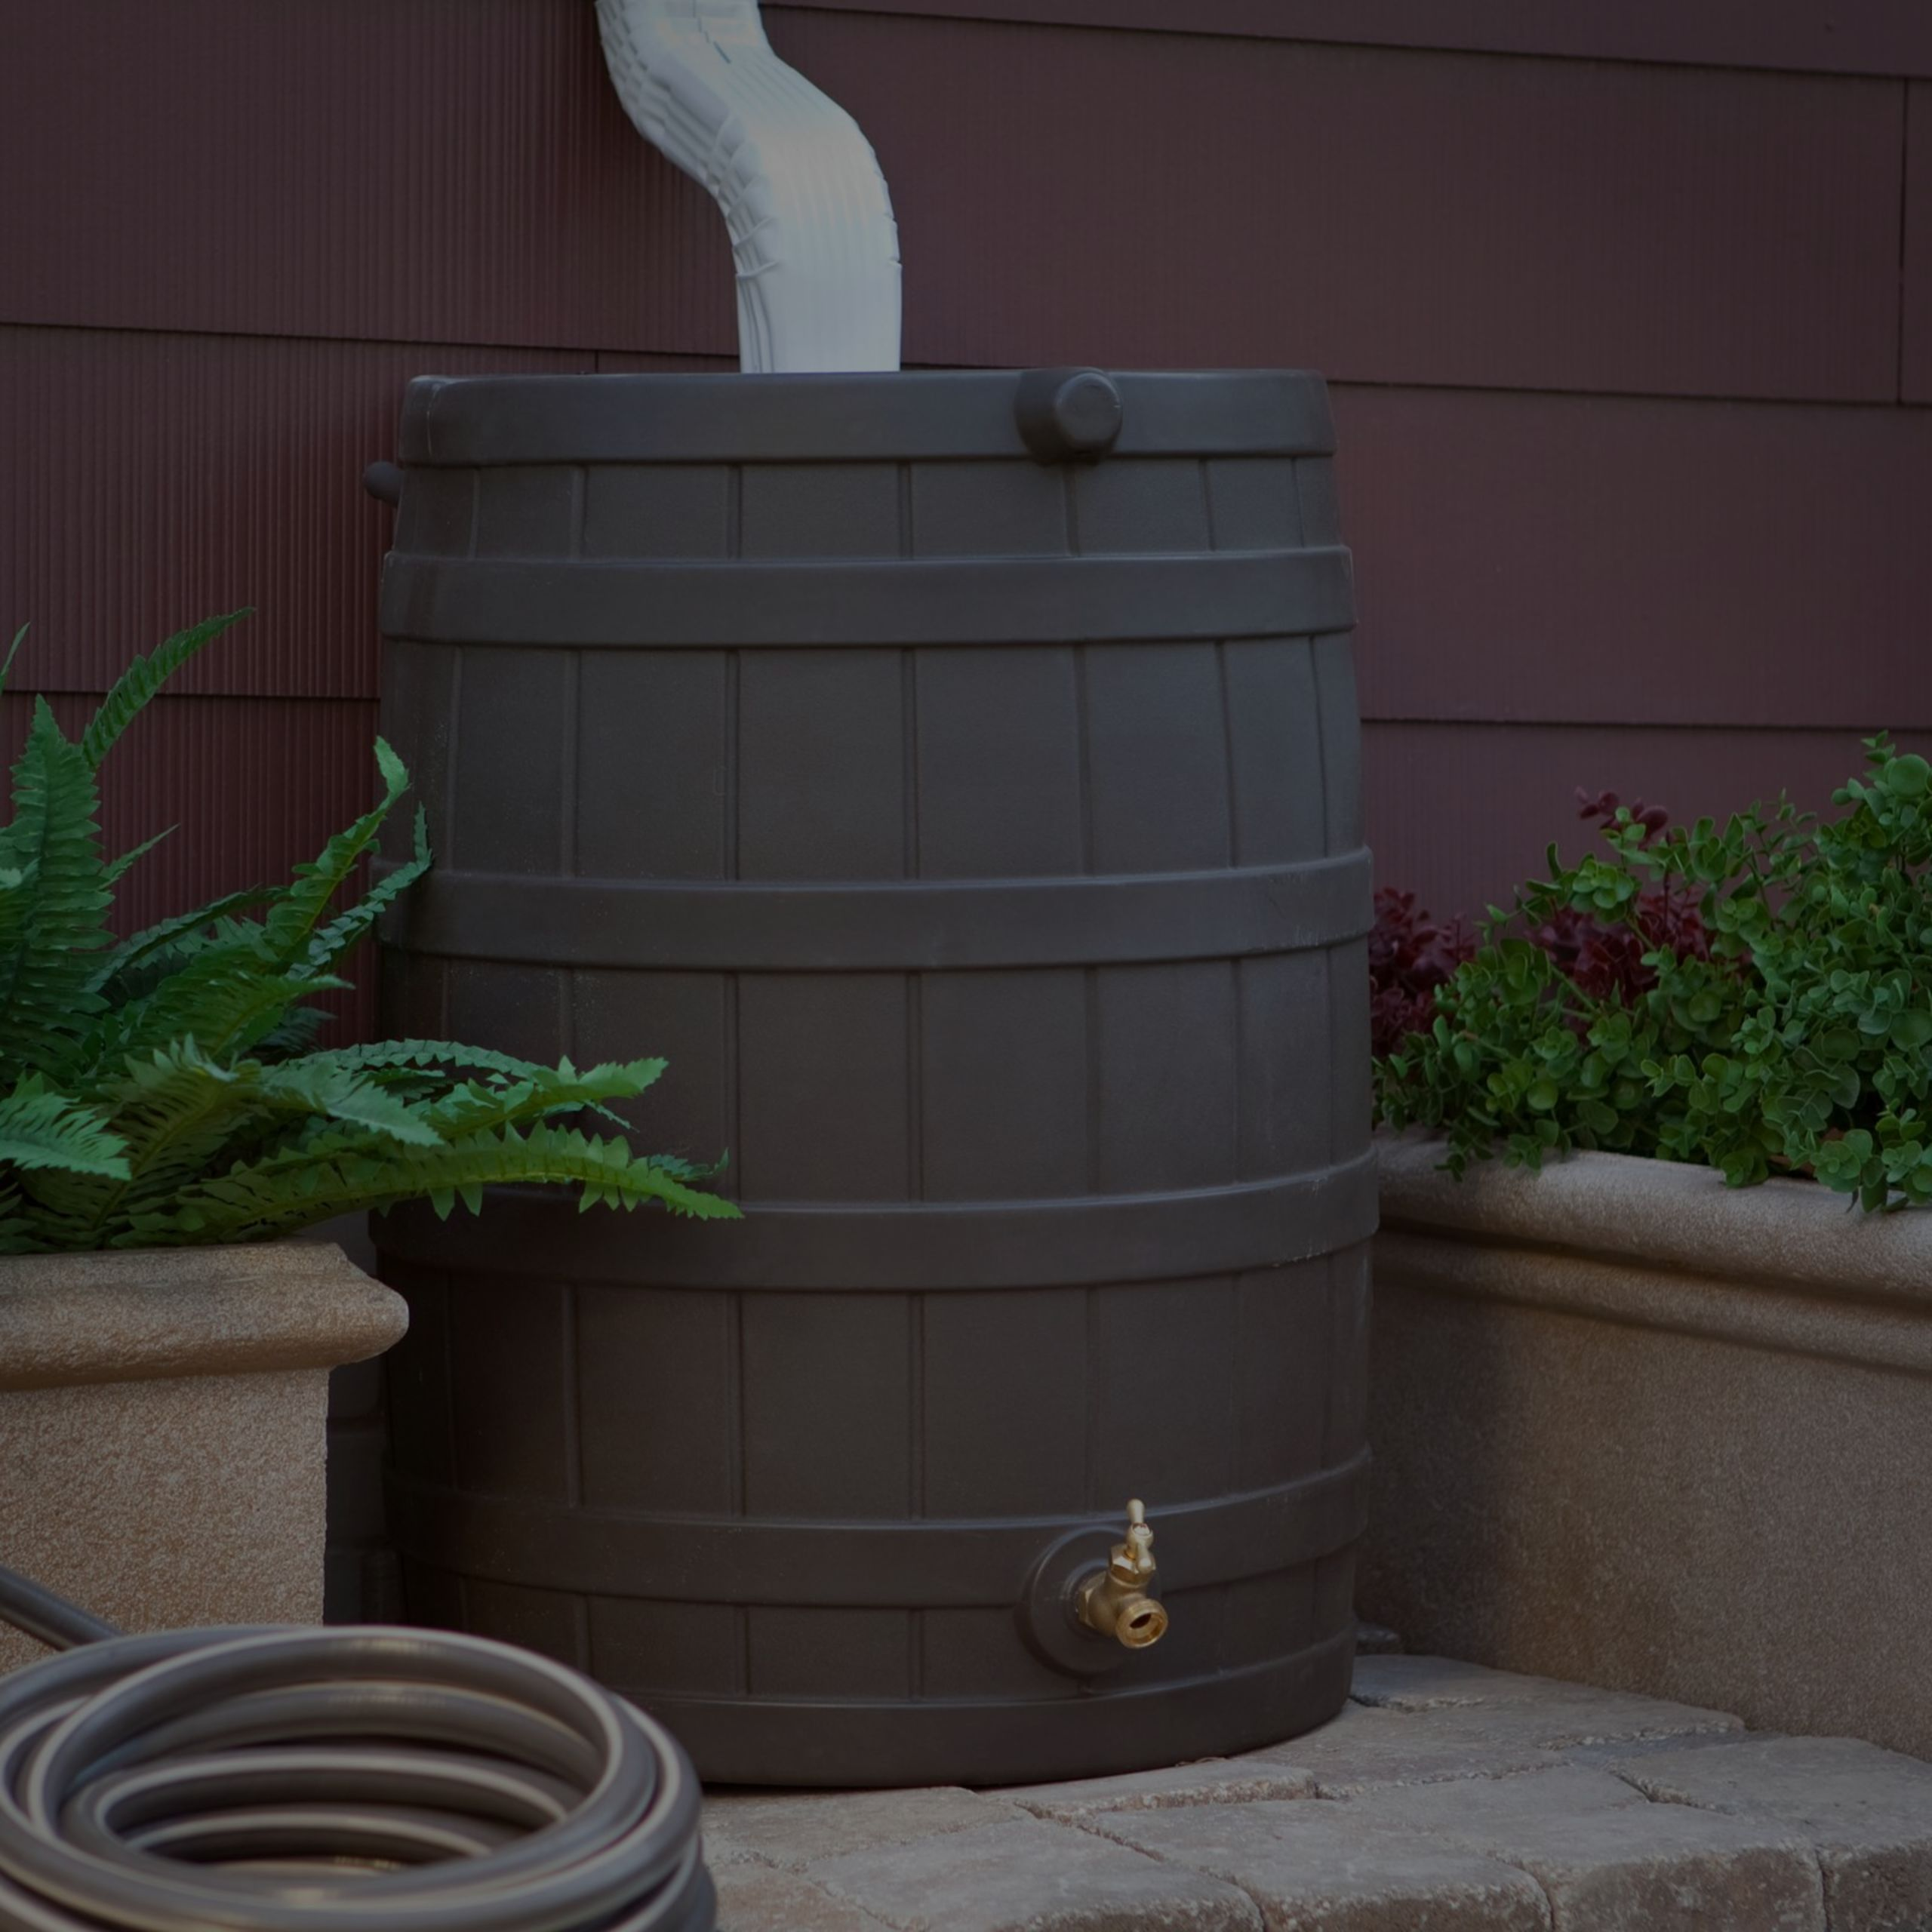 Is a rain barrel right for me?